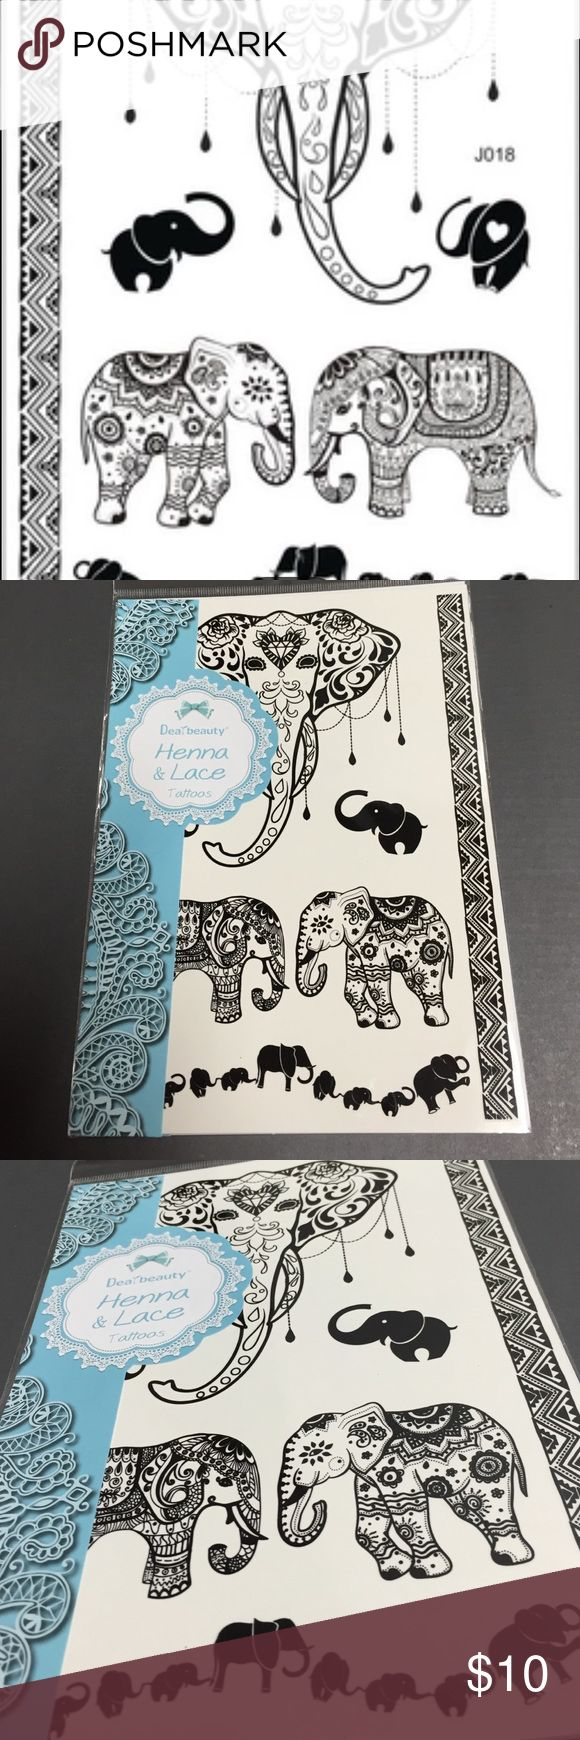 7 Henna Elephant Tattoos Lace Black 7 beautiful black Hanna & Lace temporary Tattoos, instructions included, high quality, when applied properly they stay on 5 days or more, boho, festival, Dreamcatcher, Paisley, bracelet Other